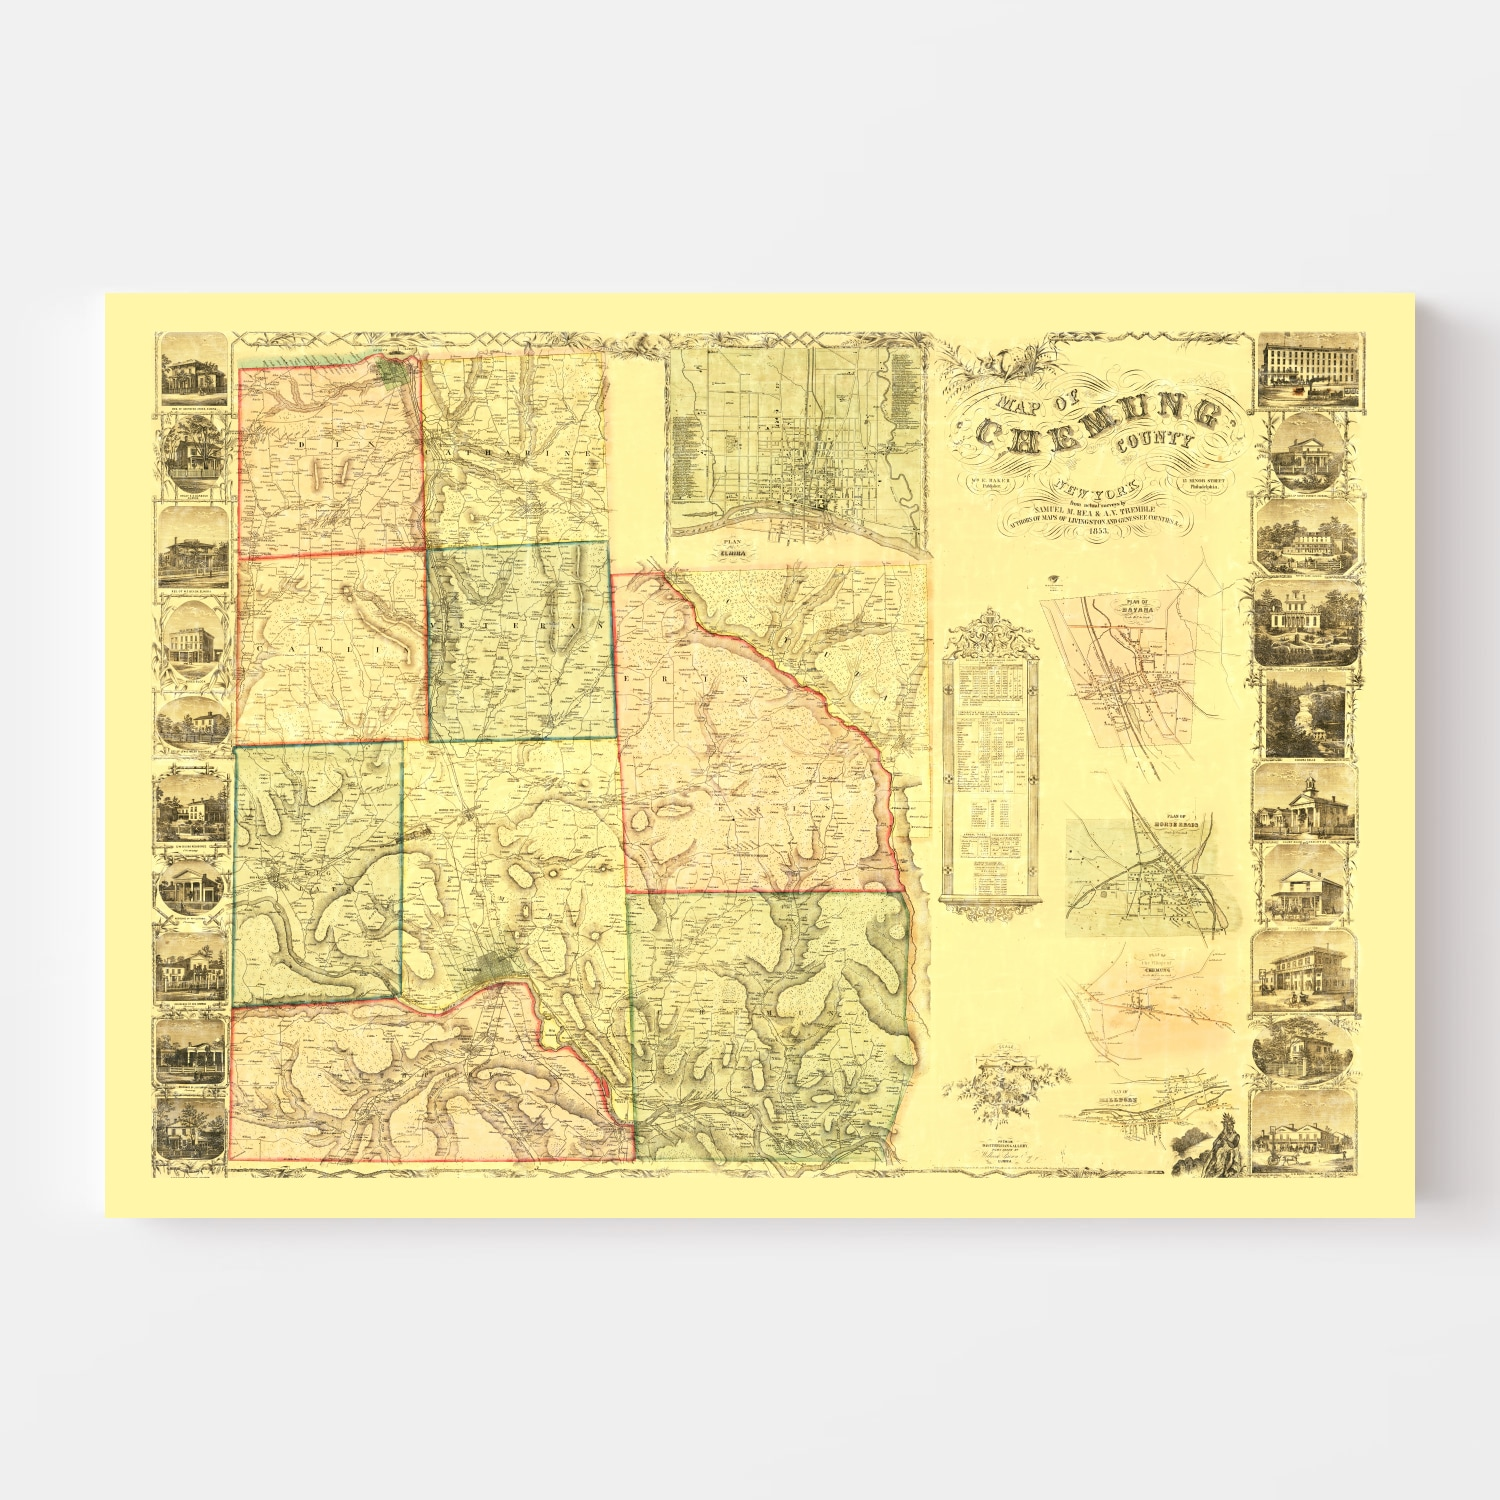 Vintage Map of Chemung County, New York 1853